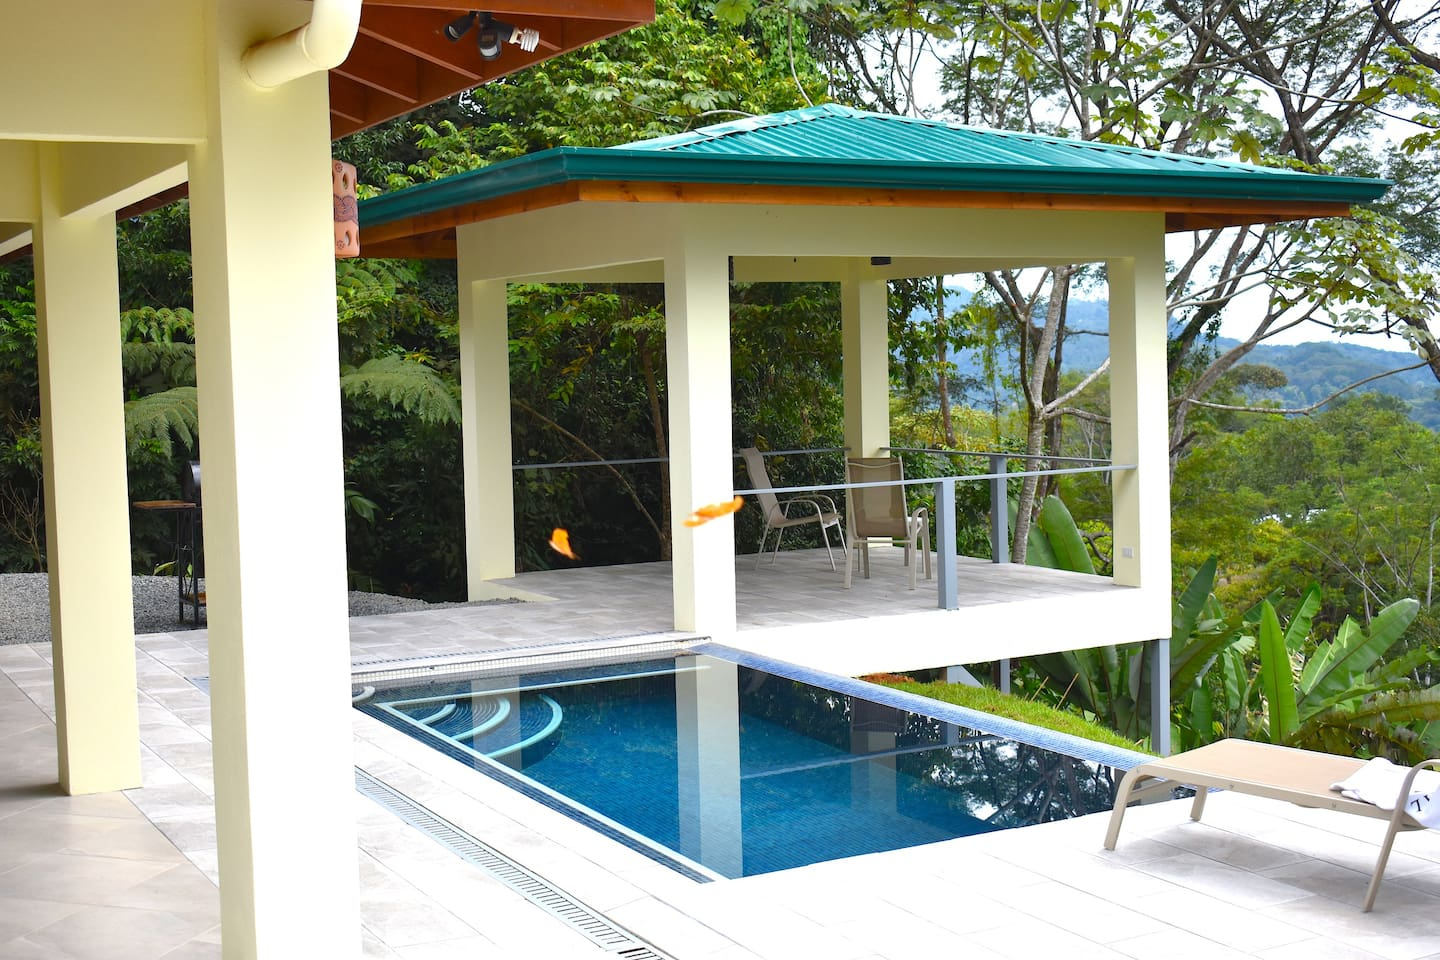 Newly built rancho offers expansive views all the way down the Osa Pennisula with islands, beaches, surf breaks and Whales Tail plus the rainforest canopy with birds, monkeys and sloths (Butterflies dancing in the foreground are not always there : )